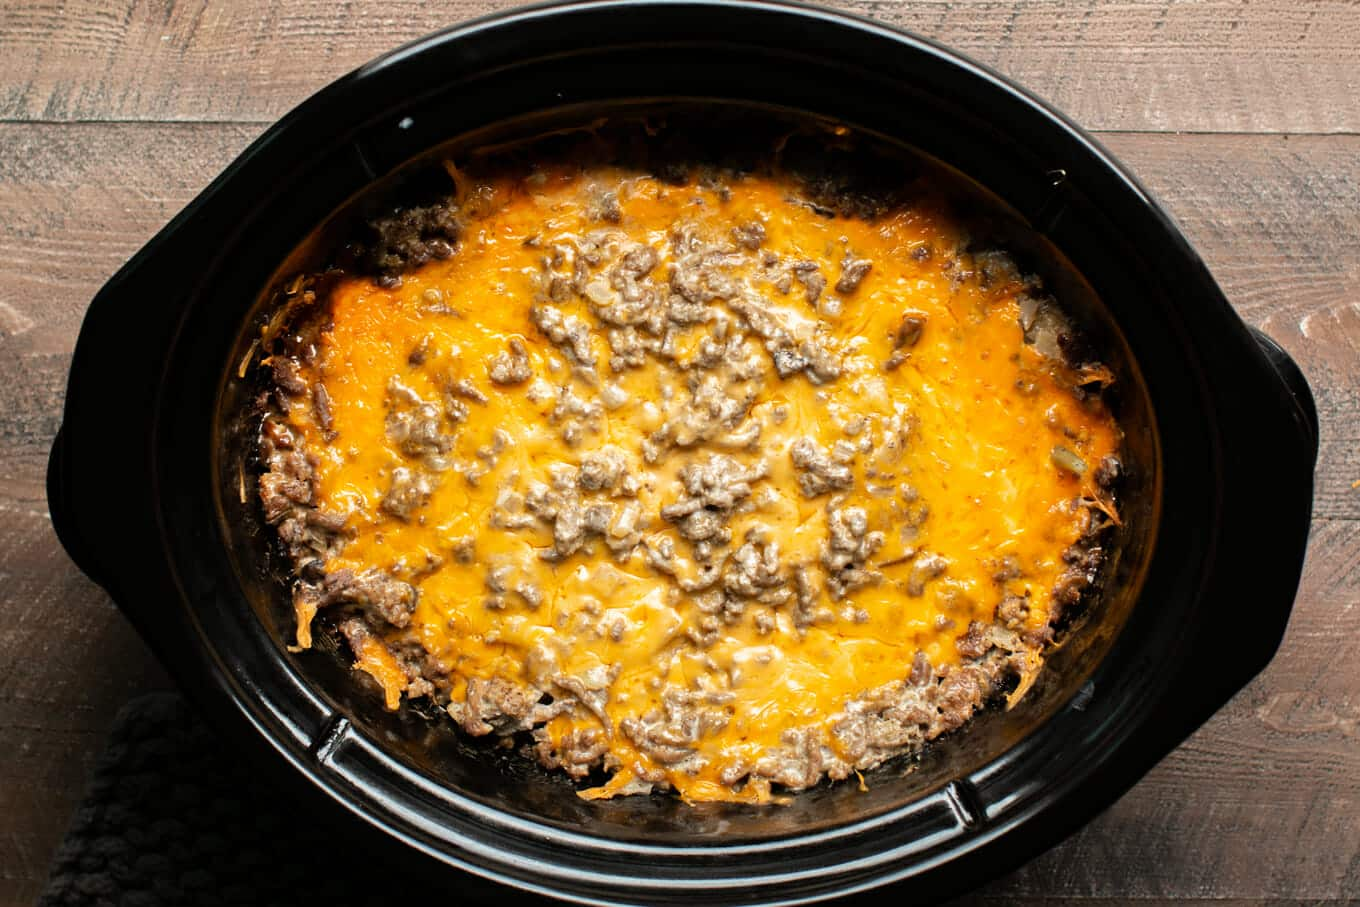 Cooked tater tot casserole in slow cooker with cheese on top.